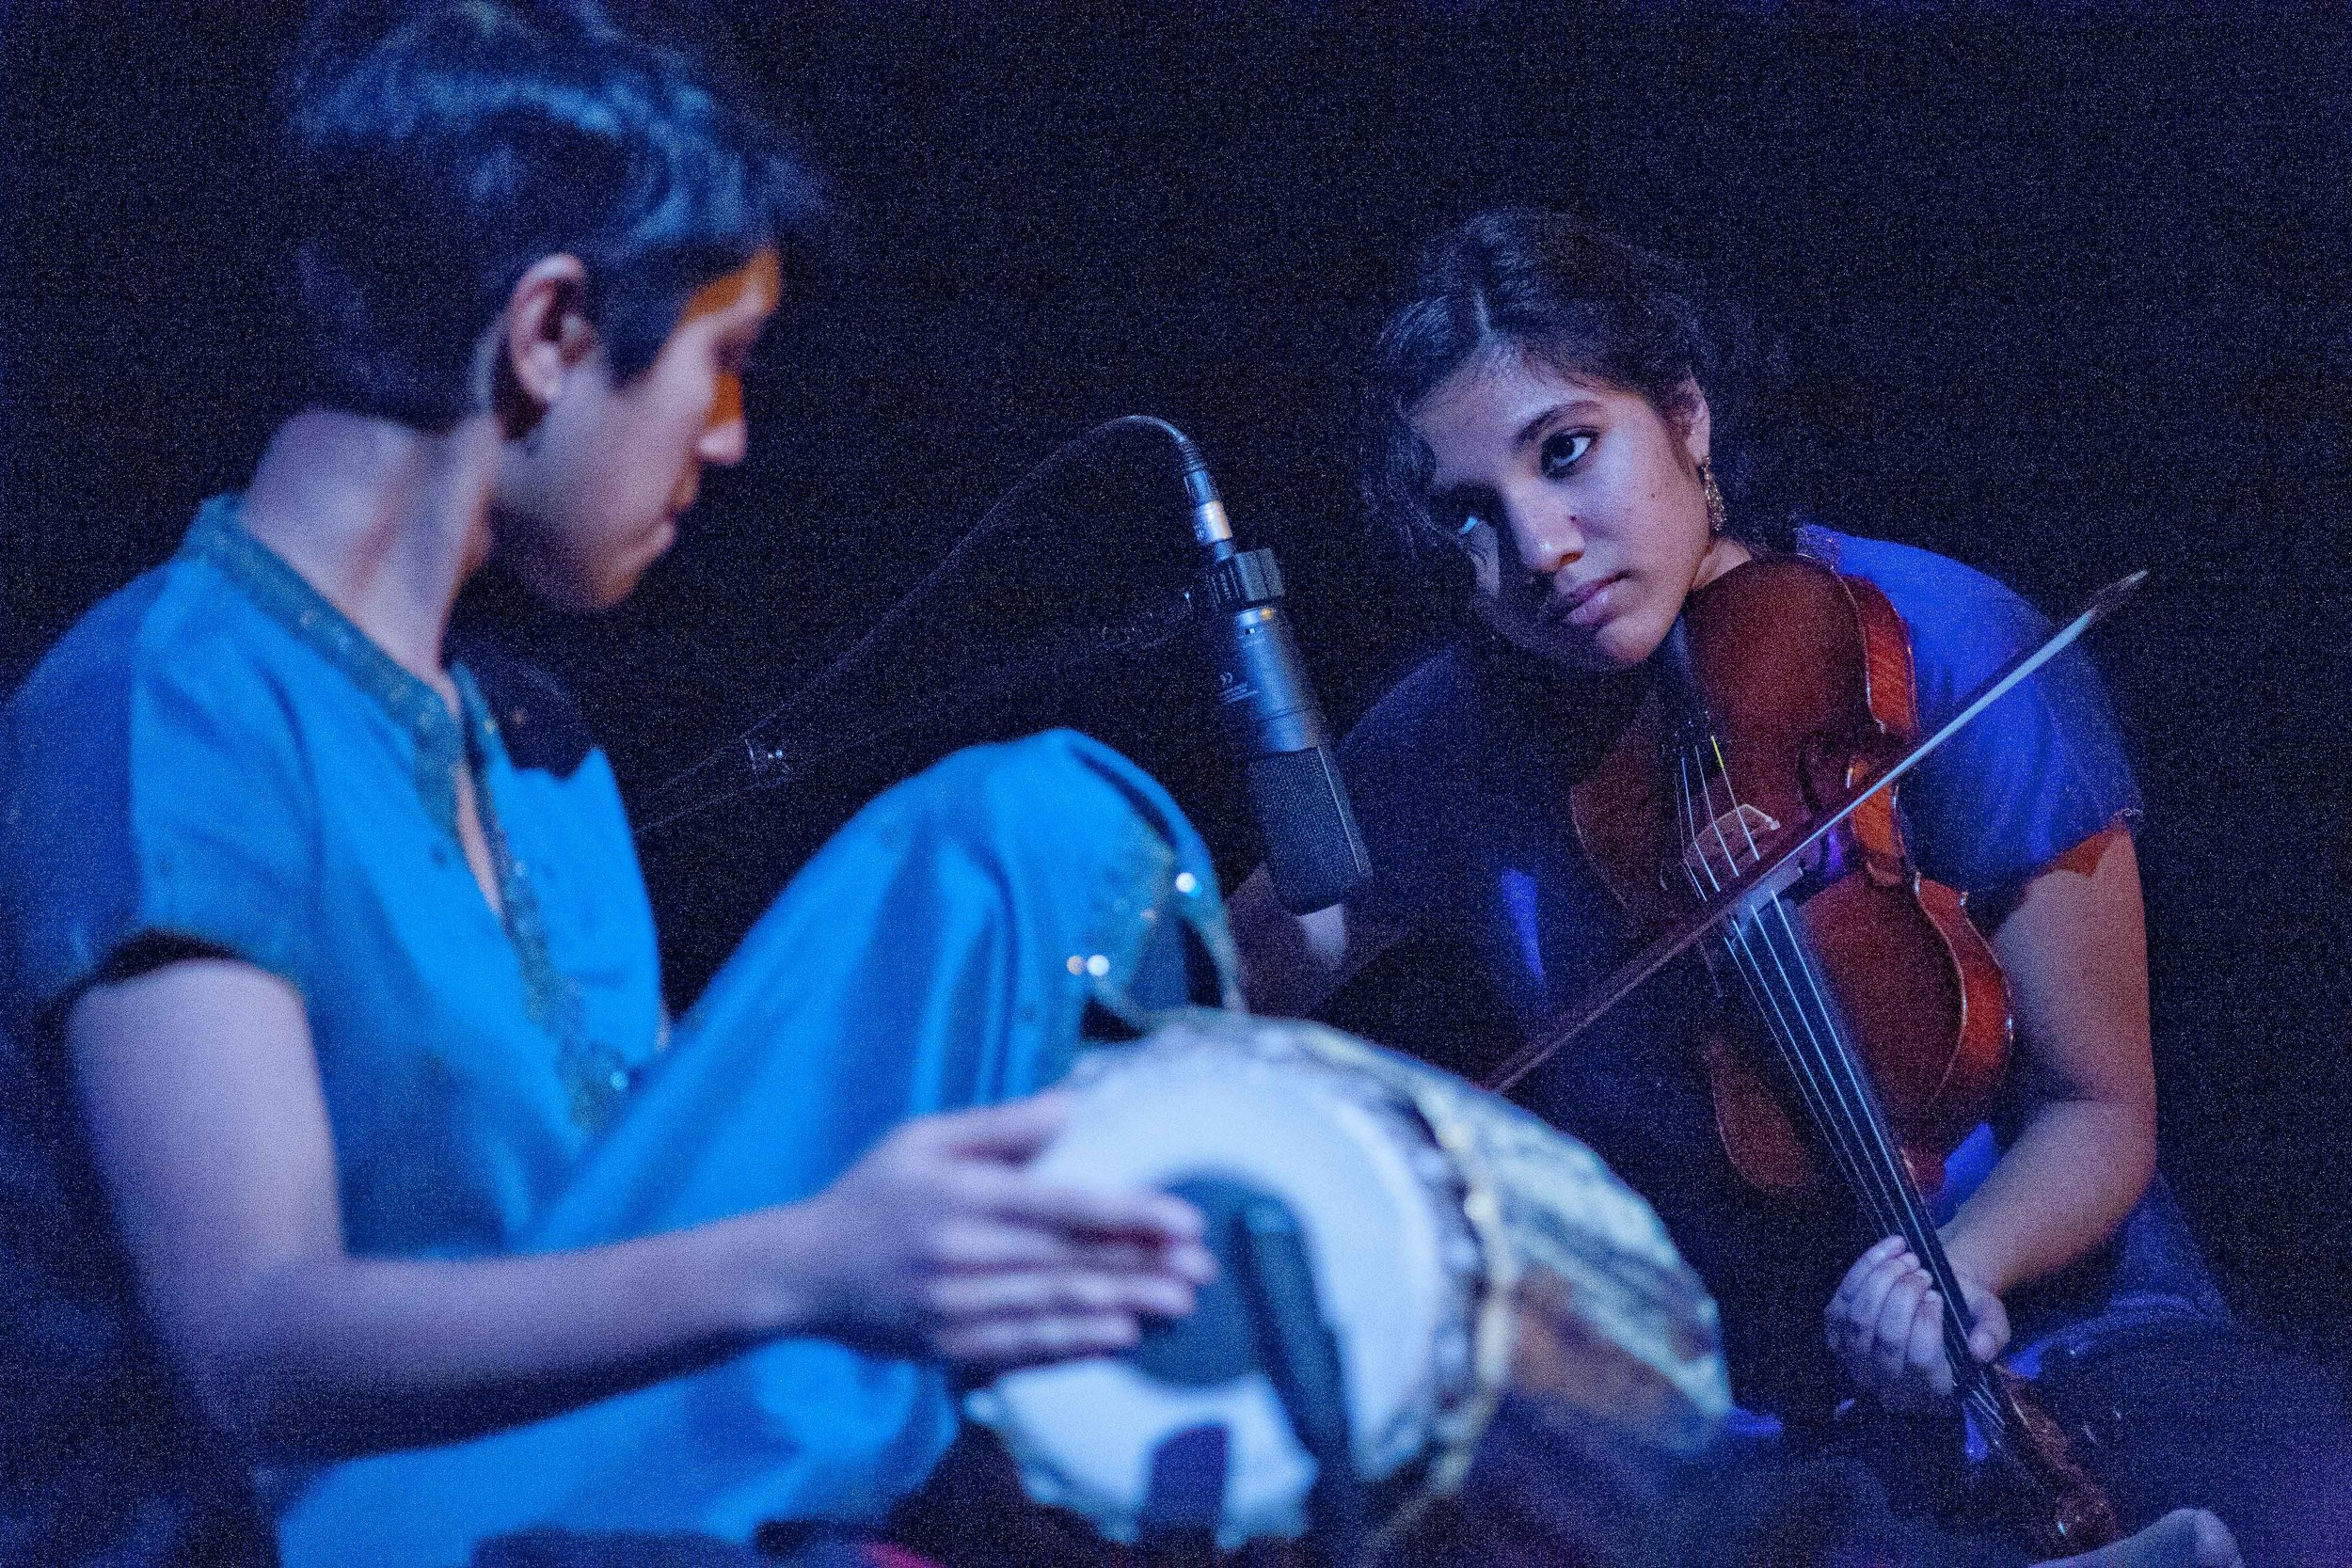 Musicians Rajna Swaminathan and Anjna Swaminathan (L-R) play mrudangam and violin respectively during Meena's Dream. Photo by C. Stanley Photography.